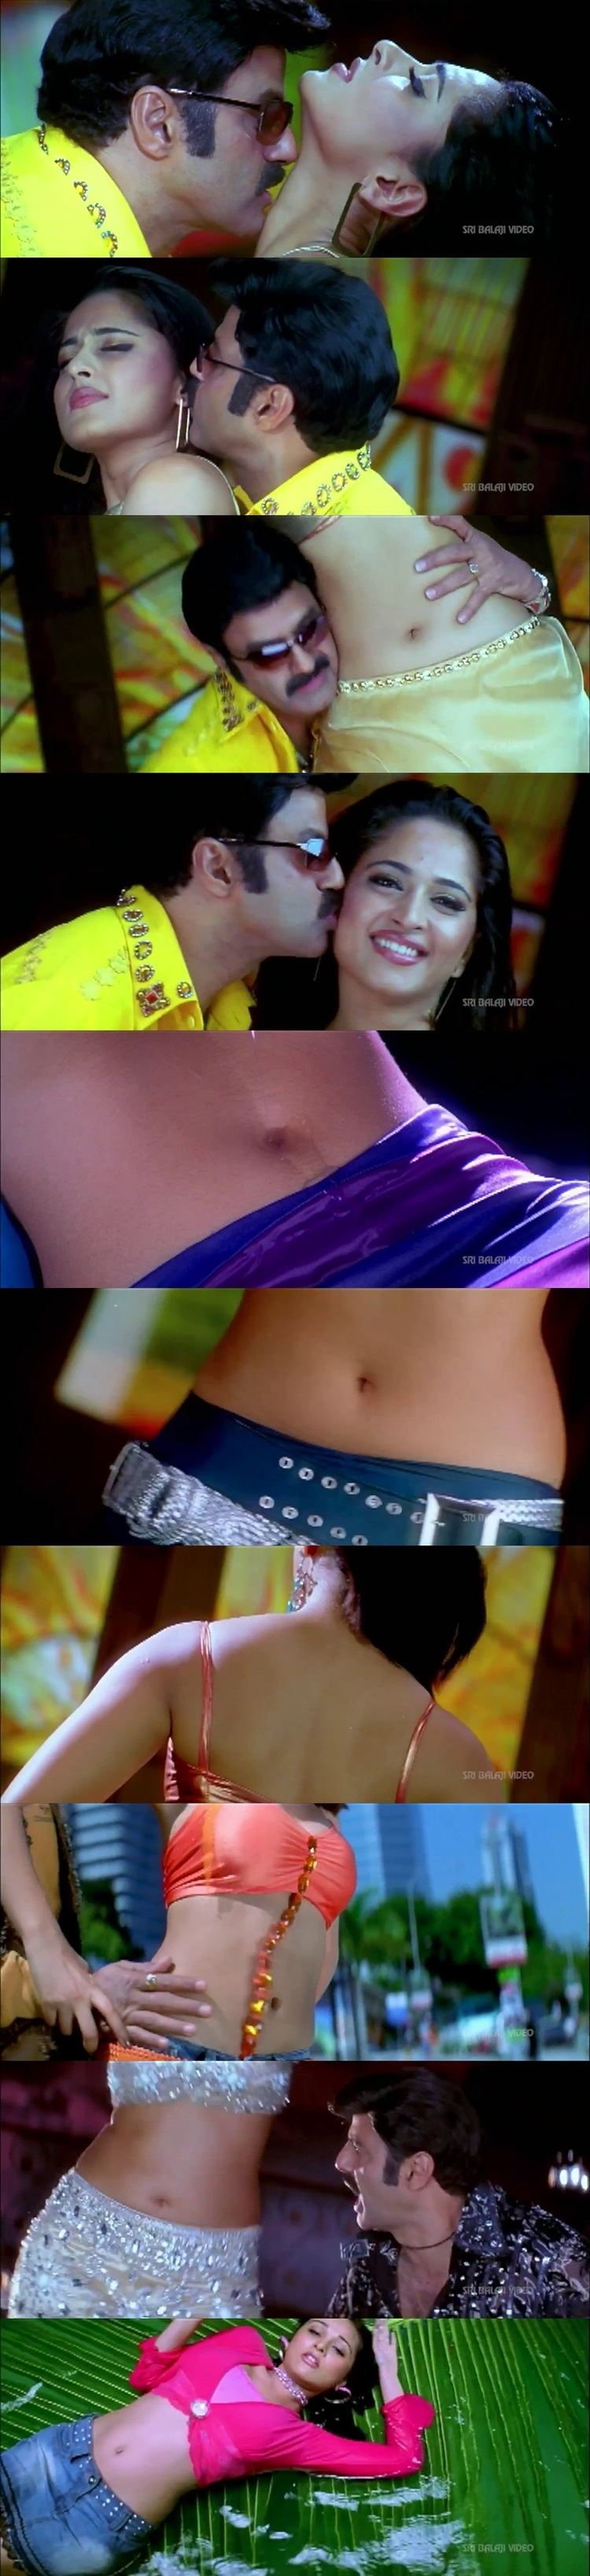 Okka Magaadu Okka Magaadu 2008 720p DVD Rip Hot Video Songs Anushka Shetty